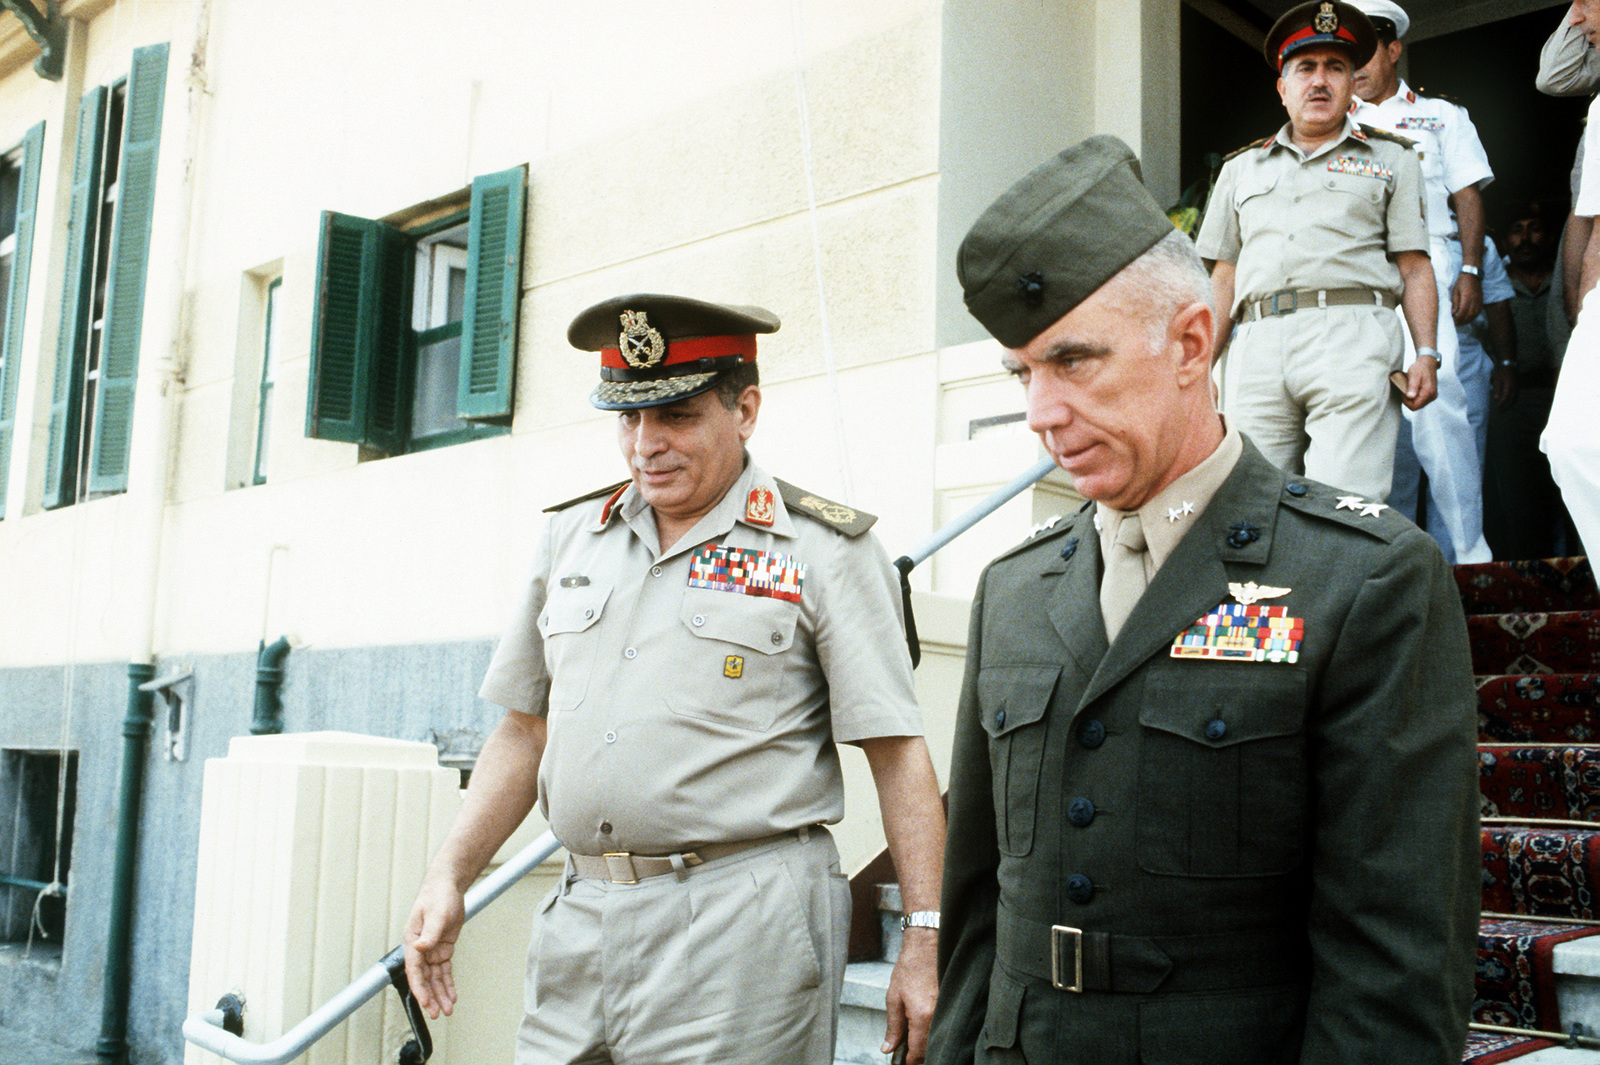 Marine MAJ. GEN. Jacob W. Moore of the U.S. Central Command, exits a building with Egyptian officers during the joint Exercise Bright Star '83